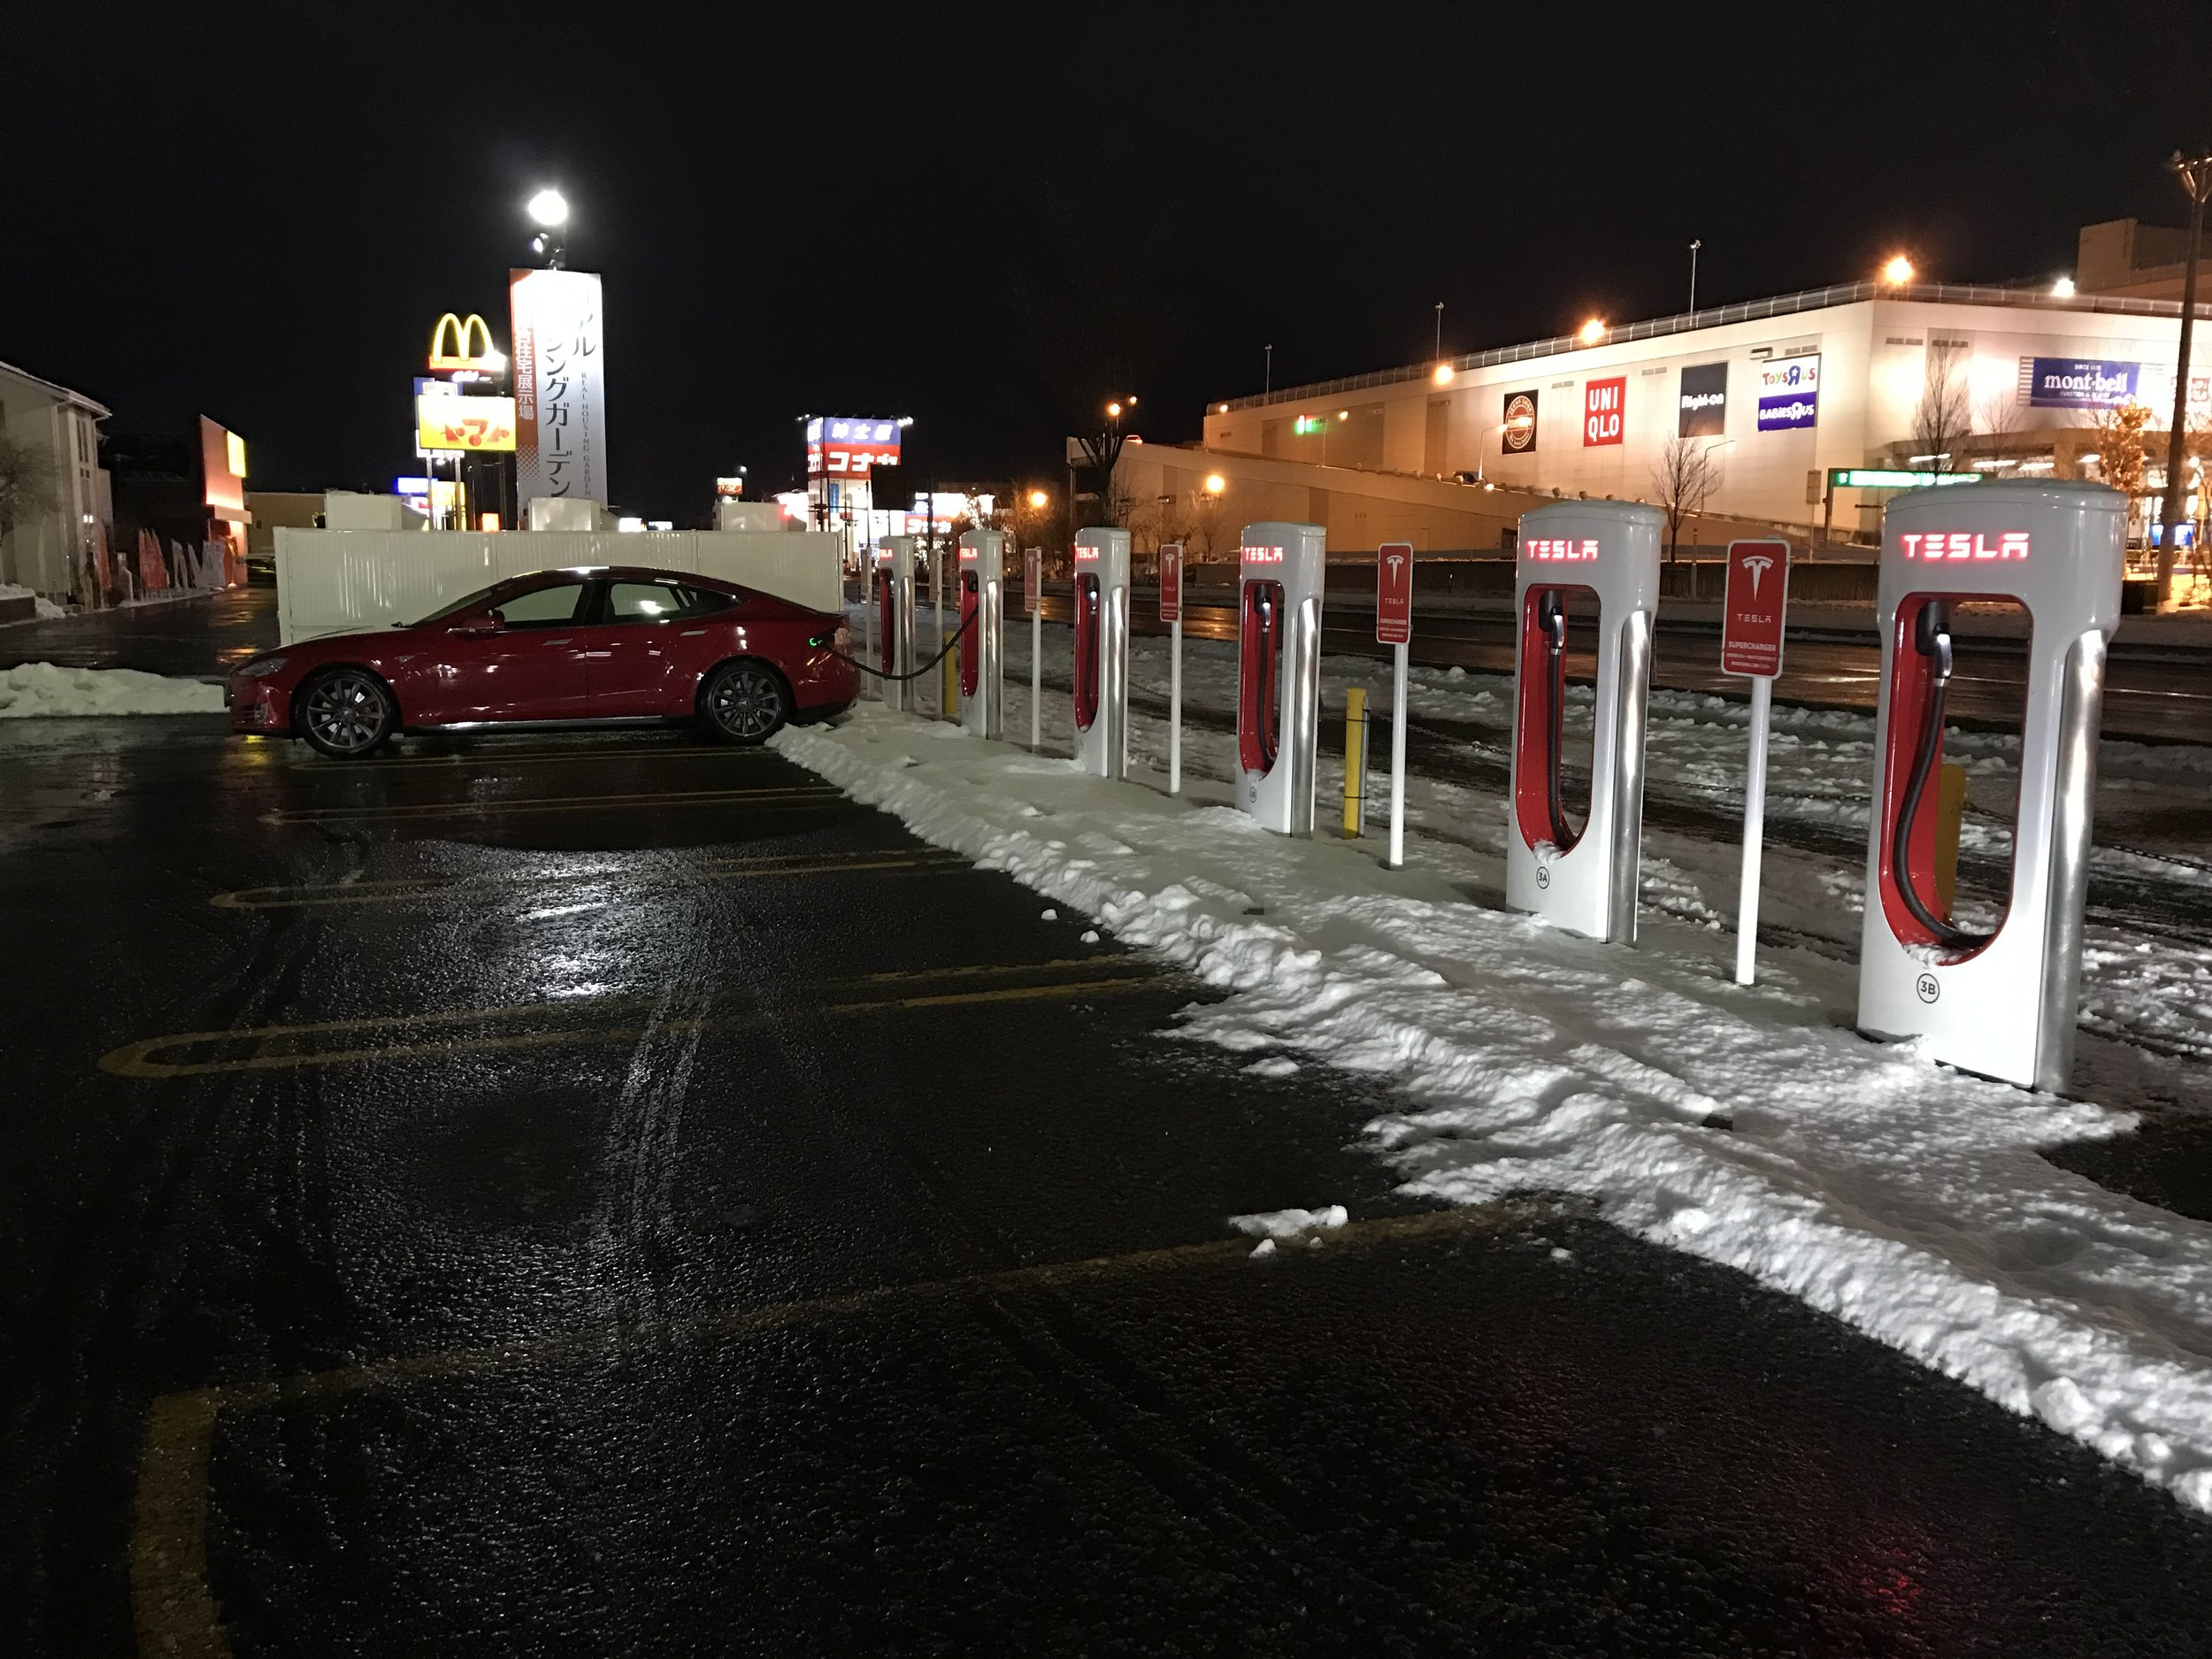 My first Supercharger with snow. They need to plow back a bit more. I had to stretch the cable to get it in.